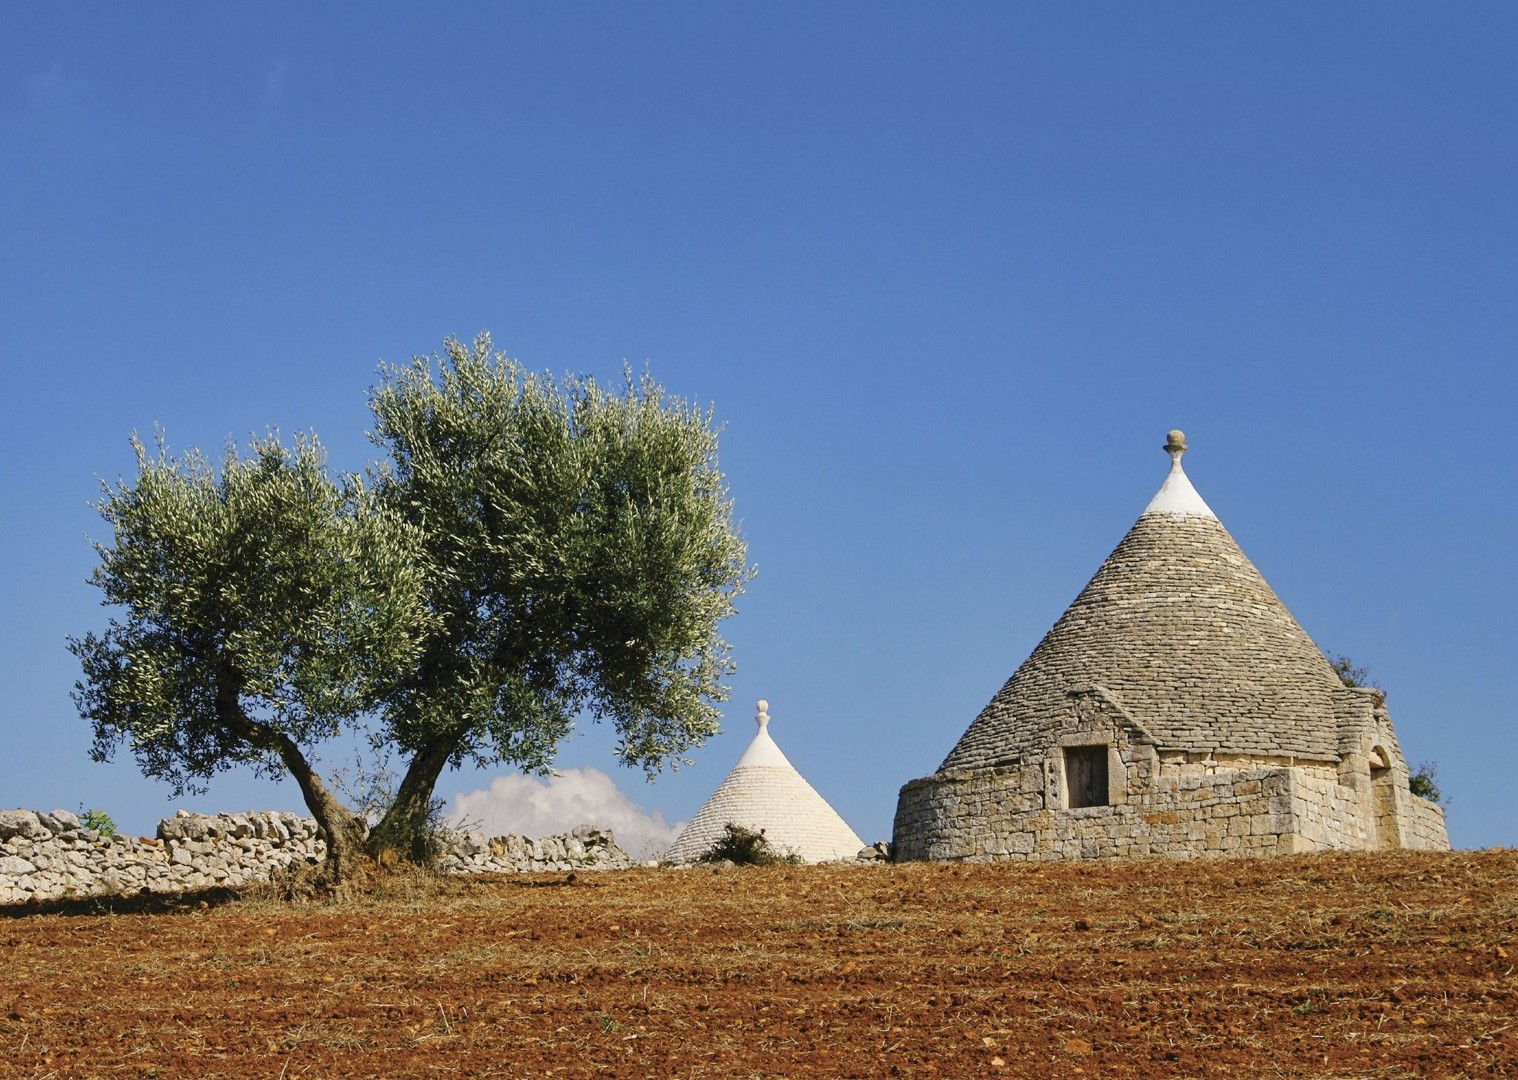 cycling-holiday-italy-puglia-trulli-culture.jpg - Italy - Puglia - Italia Leisure and Family Cycling